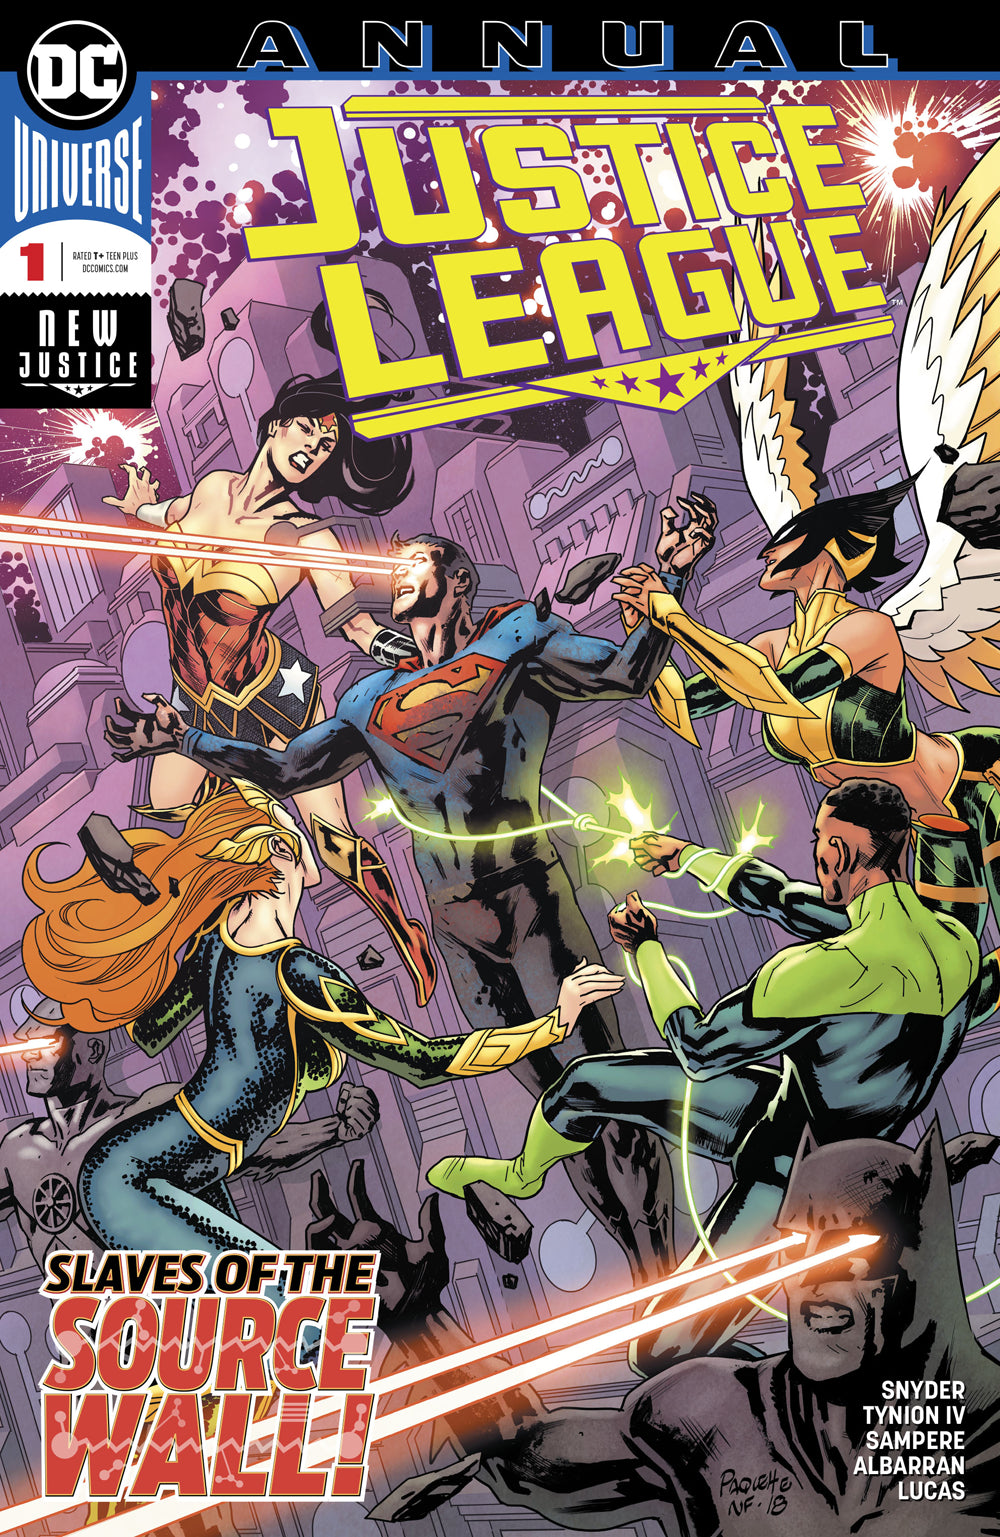 JUSTICE LEAGUE ANNUAL #1 | Game Master's Emporium (The New GME)